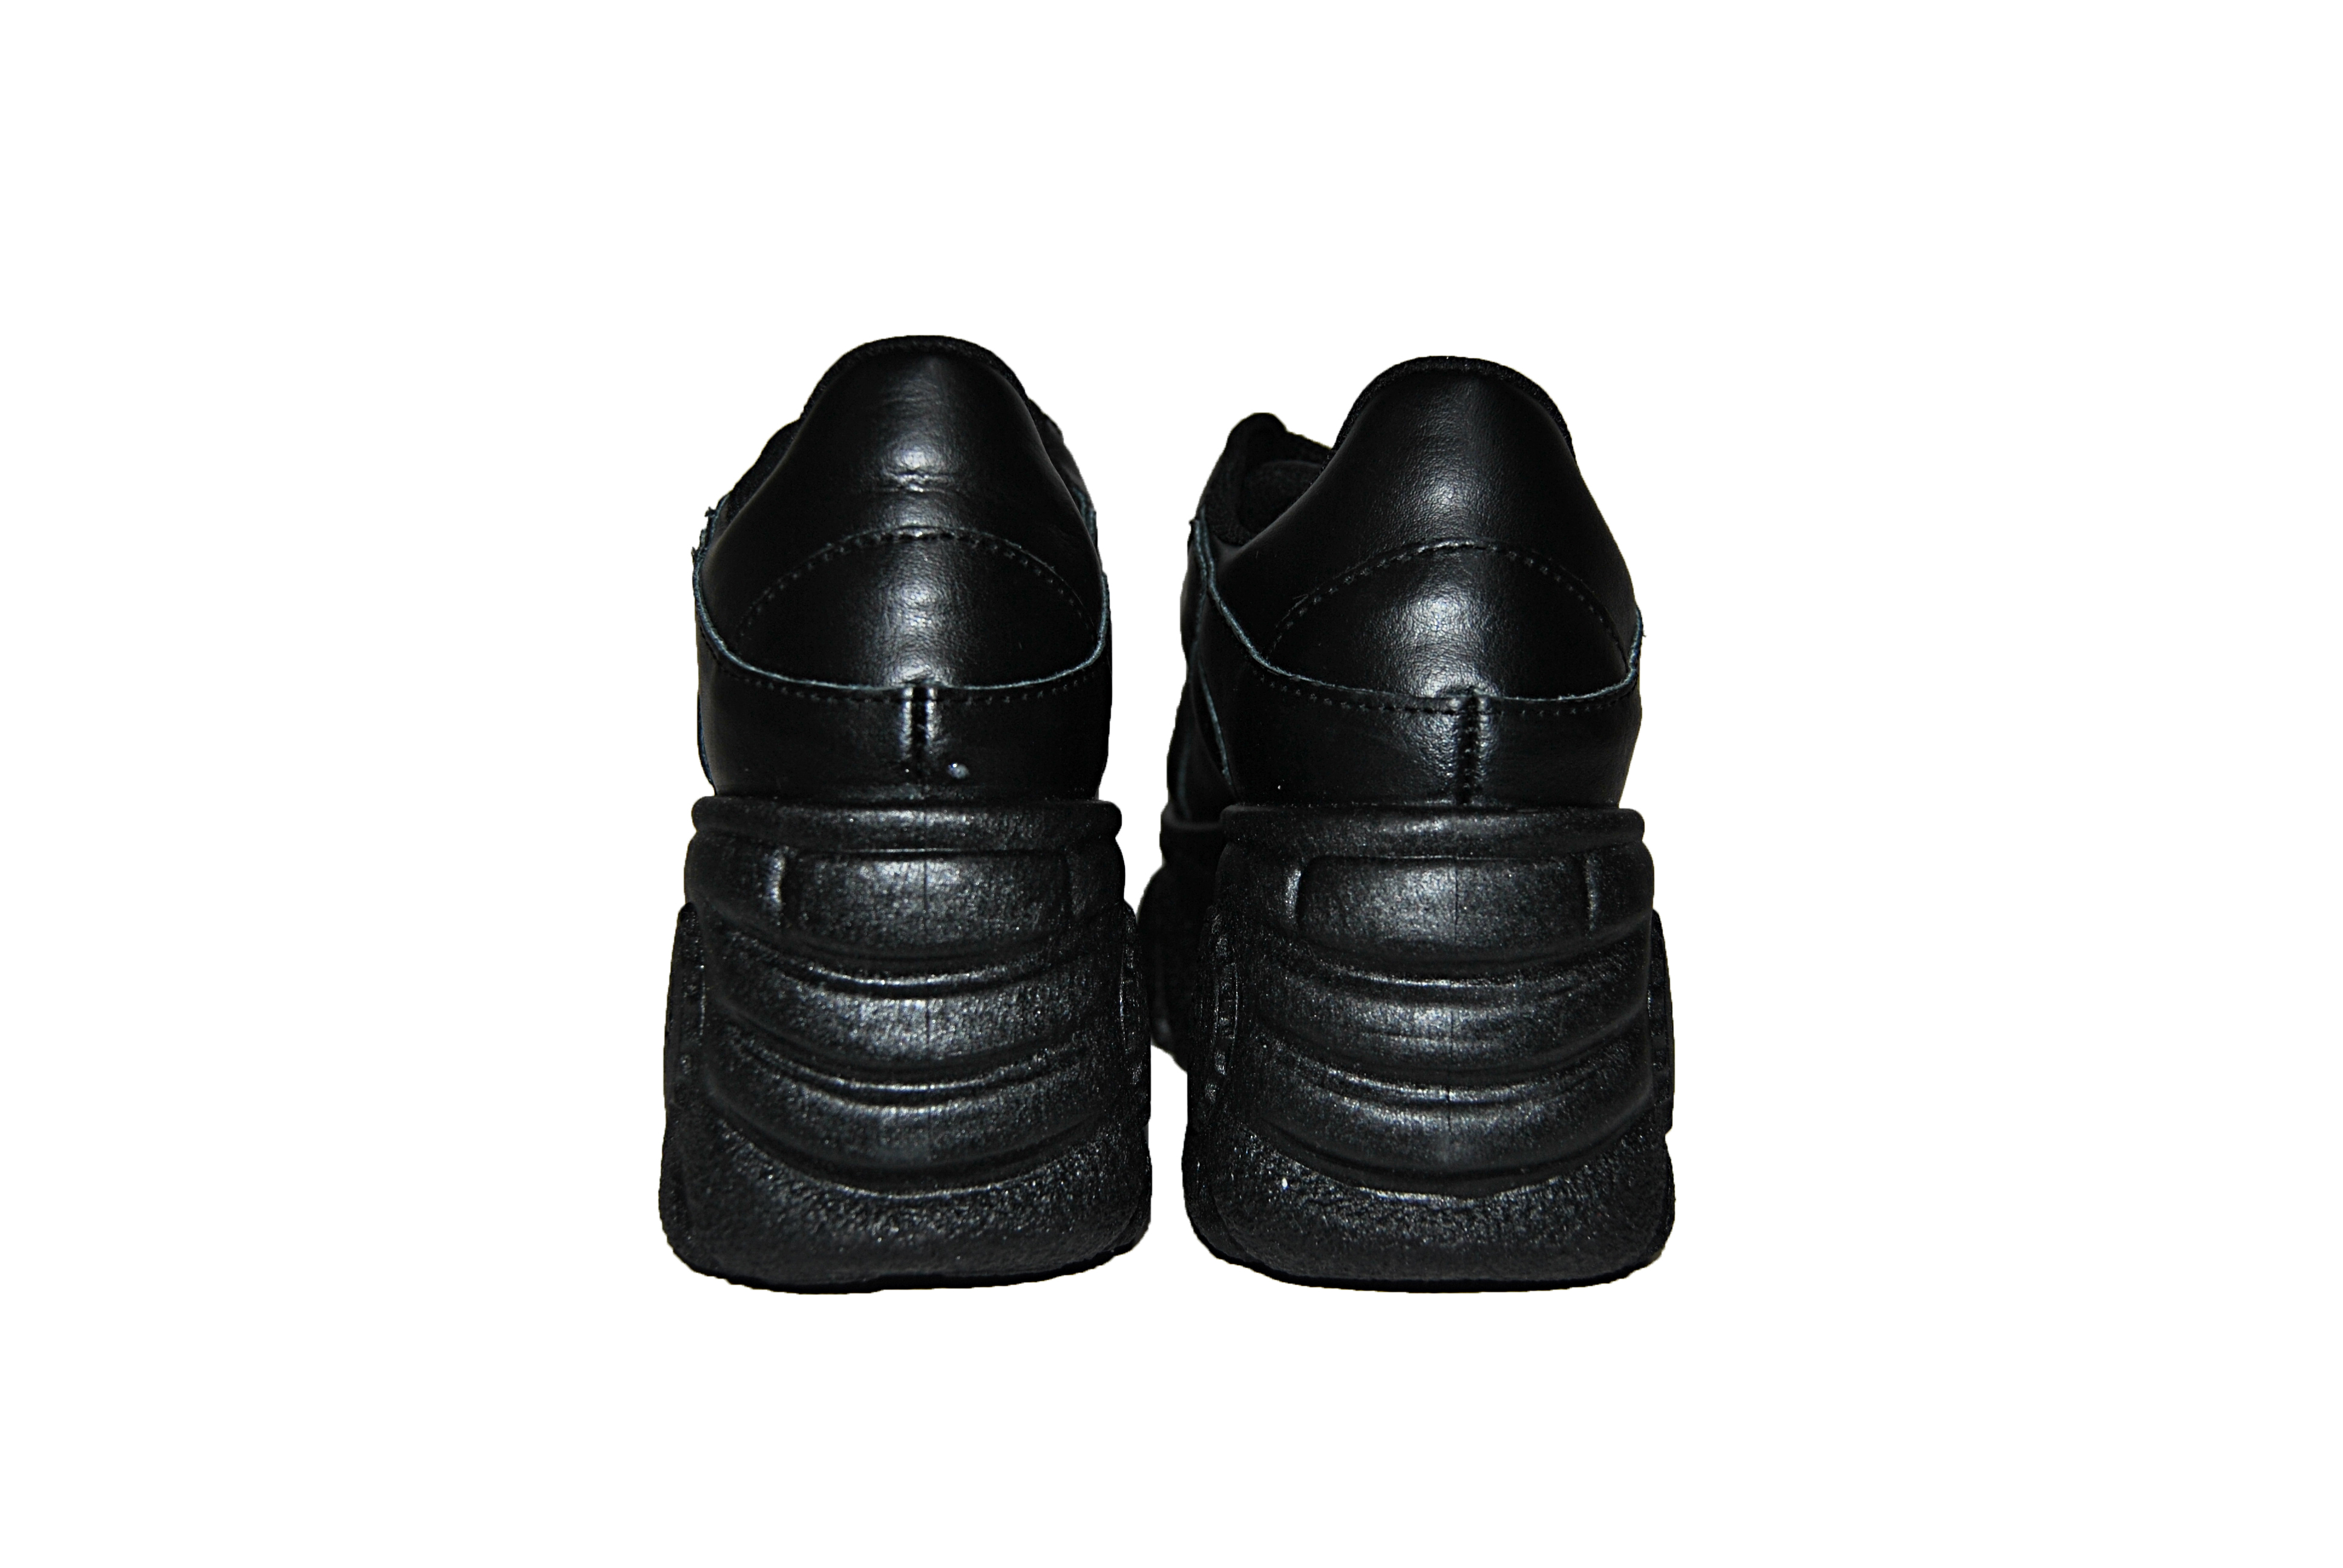 Sneakers Lezshoes Pelle In Nero Scarpe Alte Donna mNn0yv8OwP